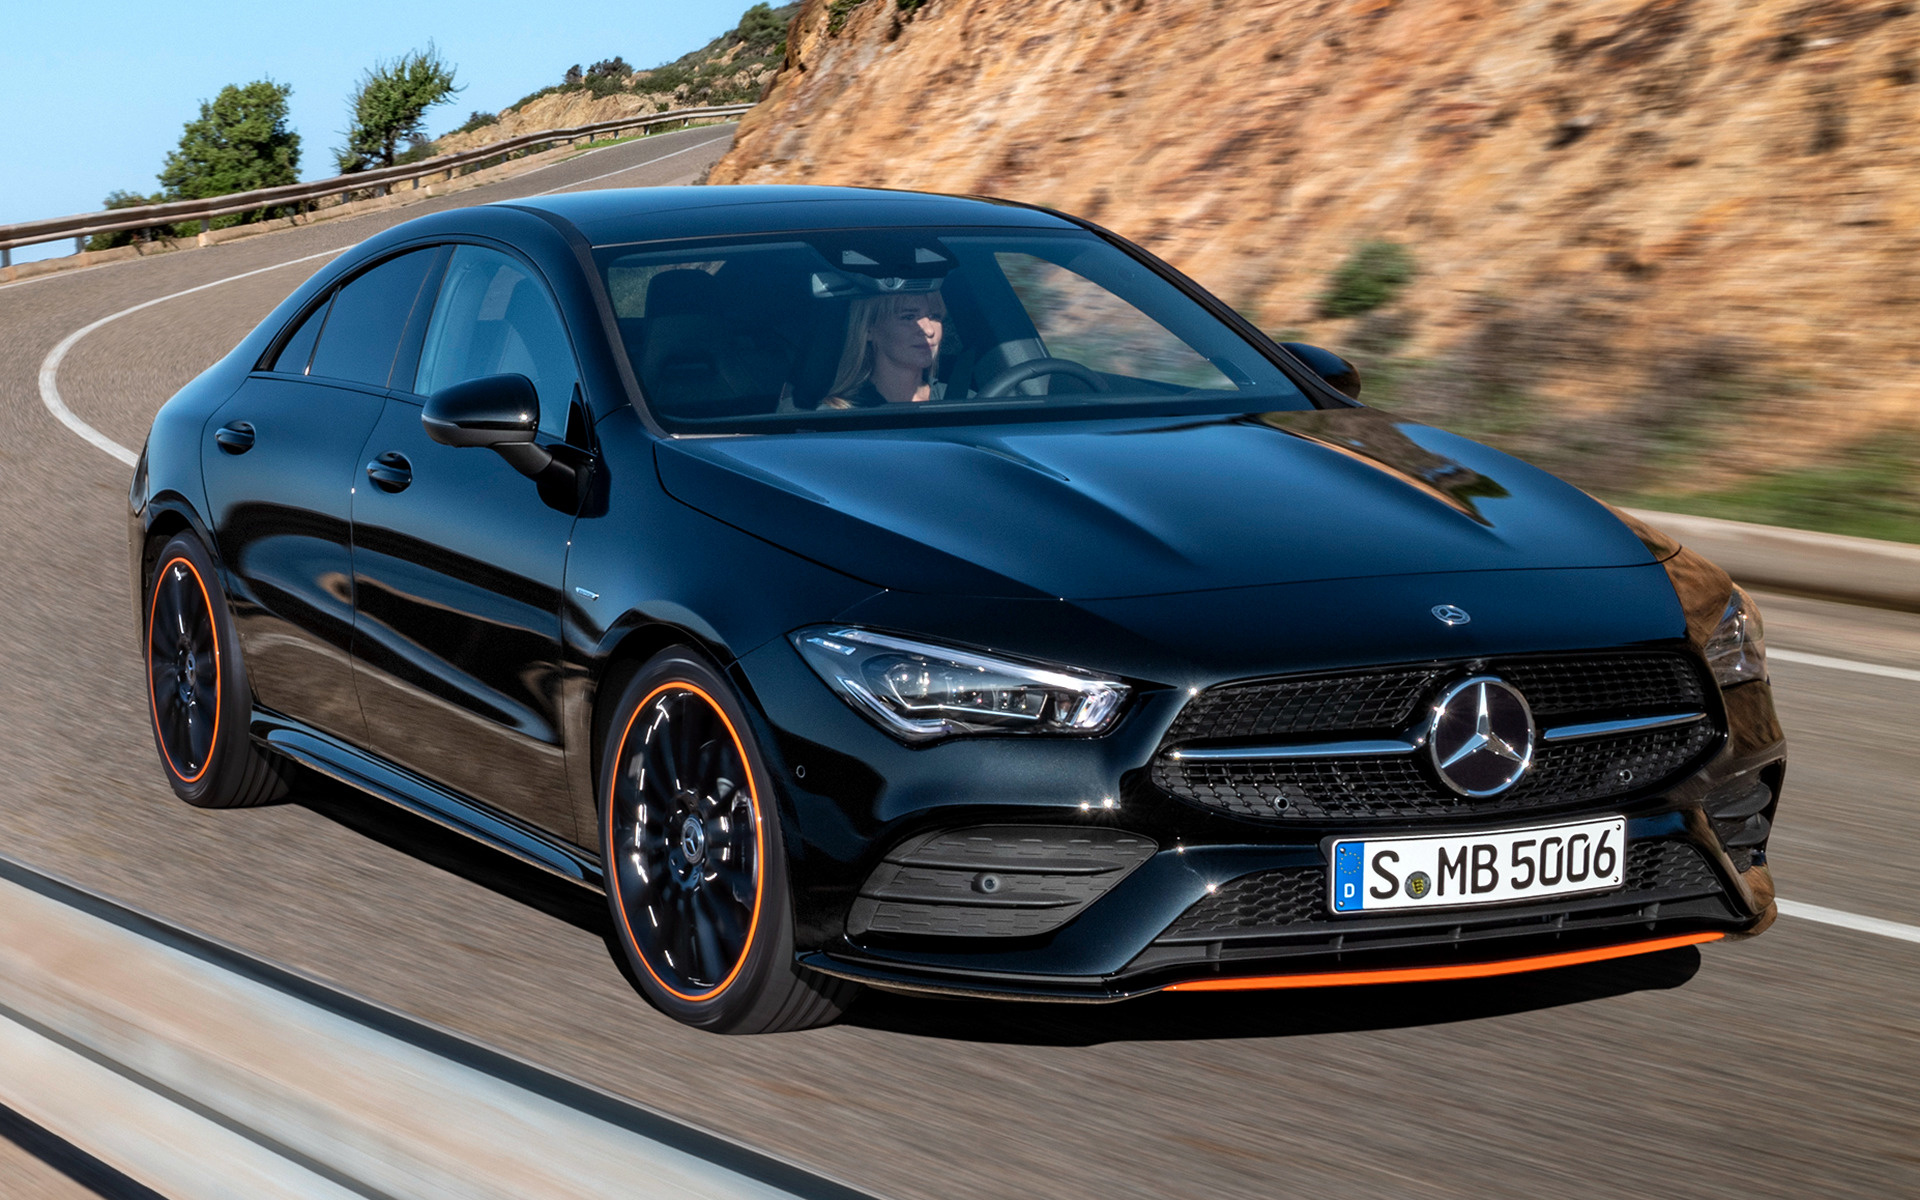 Mercedes Benz Cla >> 2019 Mercedes-Benz CLA-Class OrangeArt Edition - Wallpapers and HD Images | Car Pixel